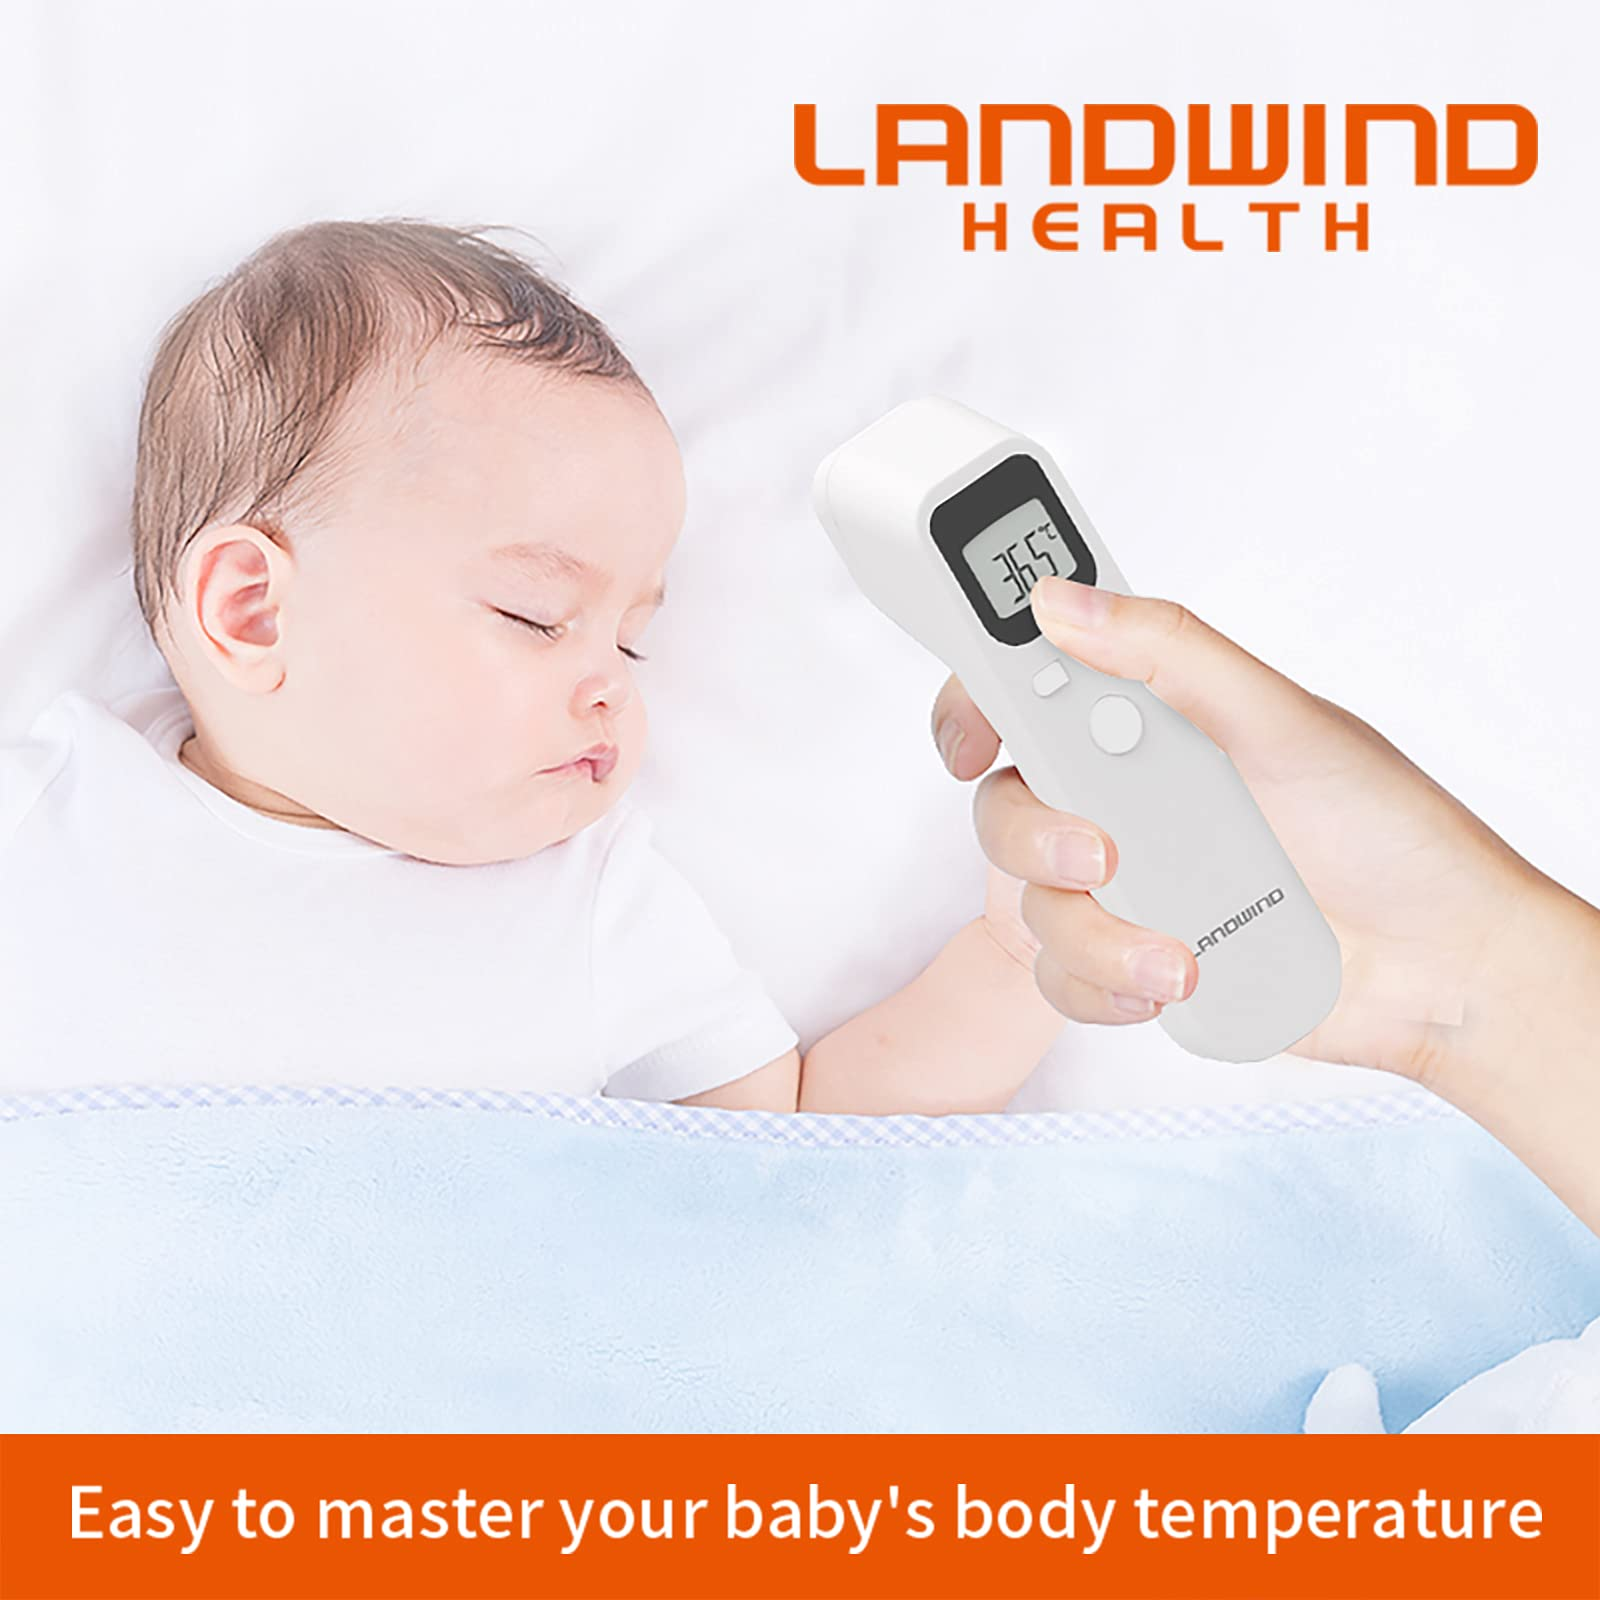 Infrared Thermometer for Adults-Digital Medical Thermometer- Forehead thermometers for Kids-Non Contact themometer for Adults, Babies, Children and Indoor use